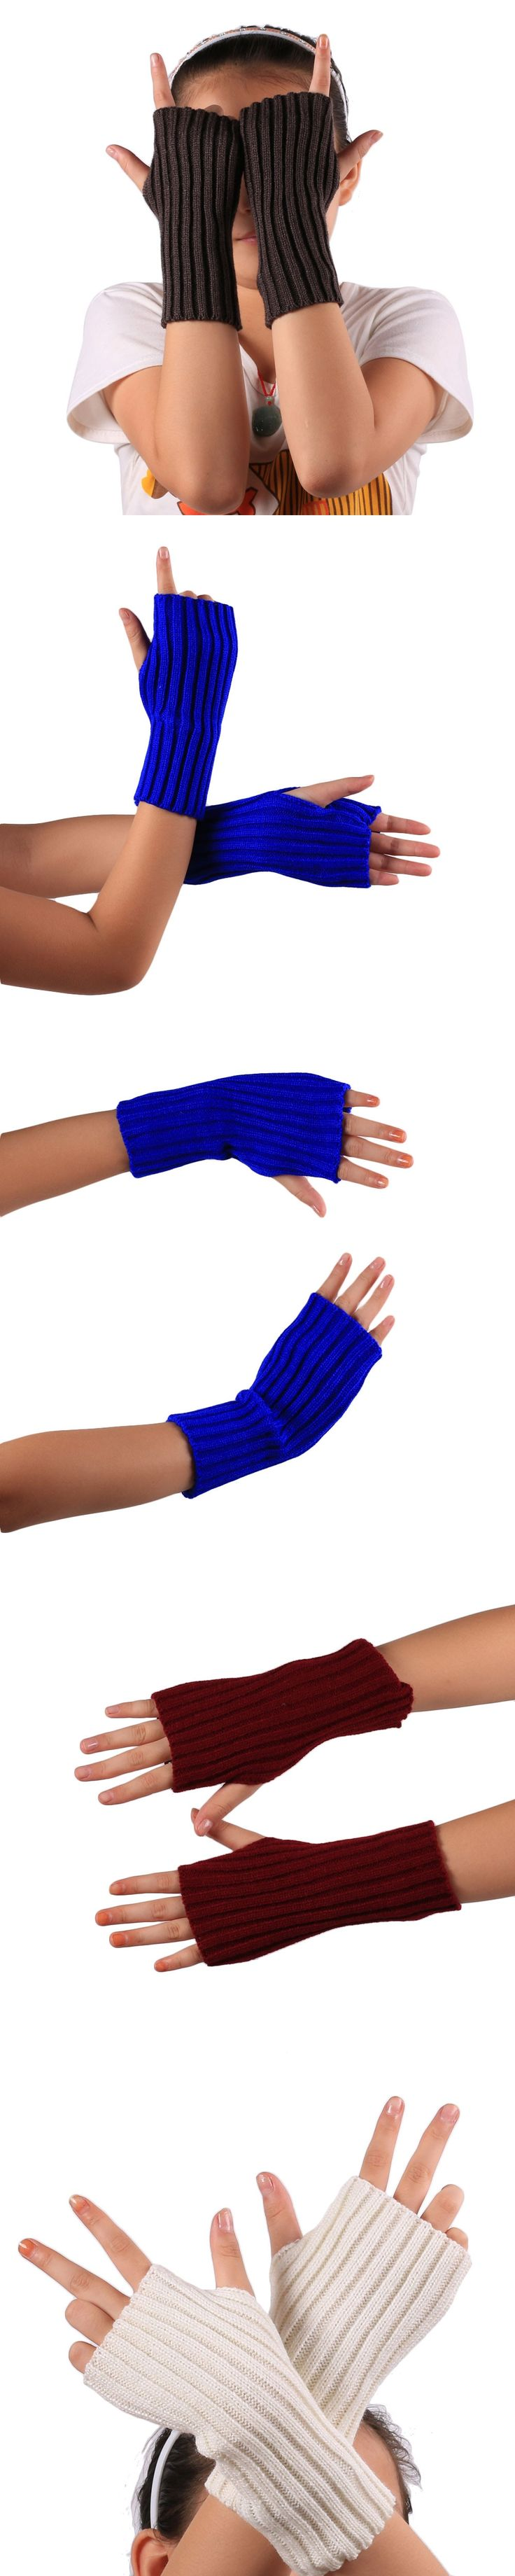 """Knitted Fringe Warm Gloves Knitted striped half finger gloves Acrylic Fibers 22*7cm/8.66*2.75"""" comfortable warm gloves #GH30"""